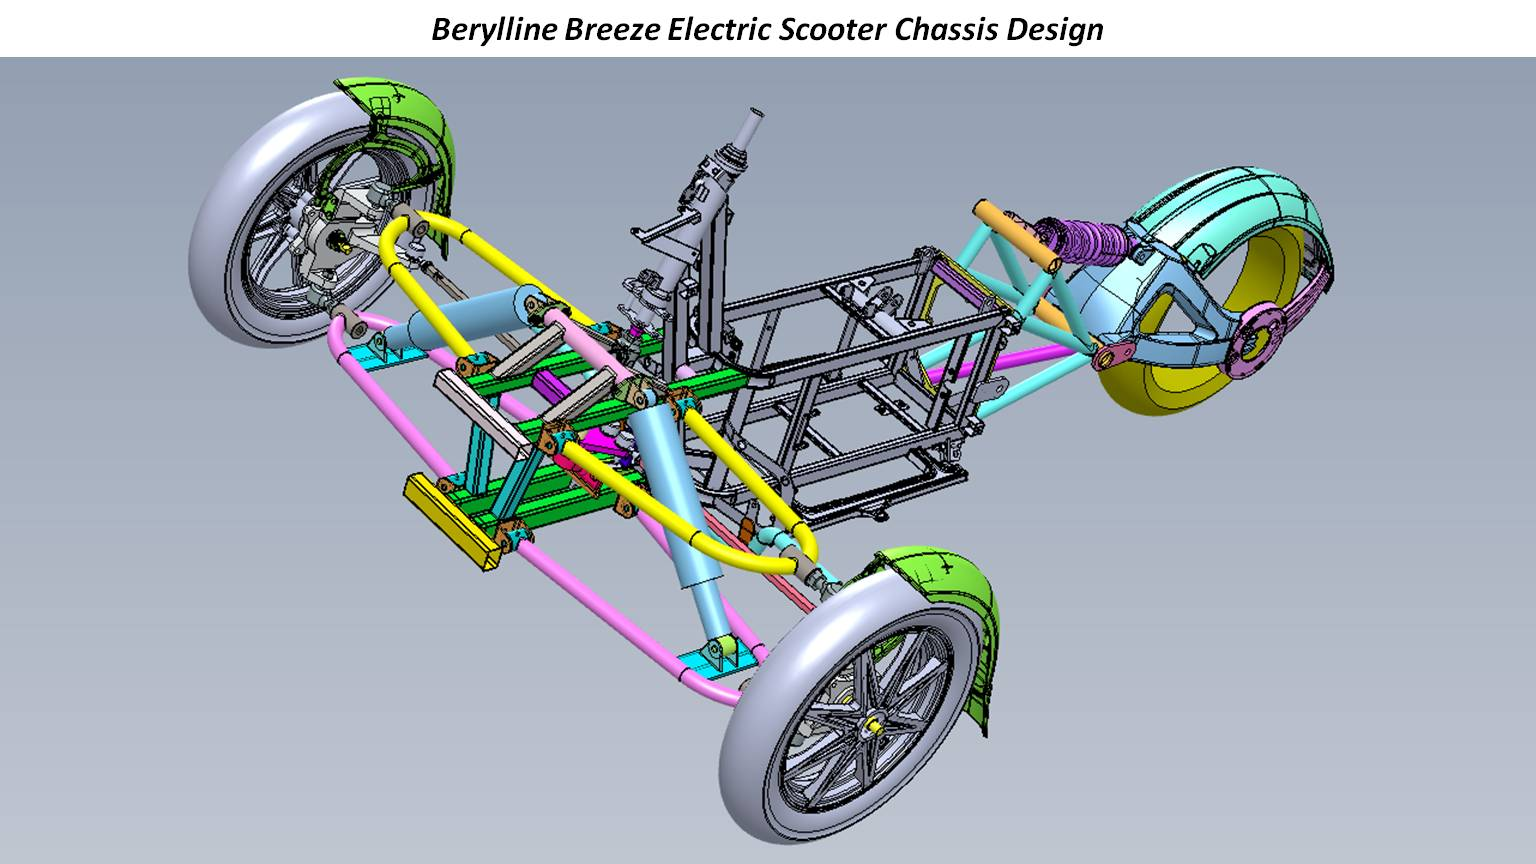 Berylline Breeze Electric Scooter Chassis Design